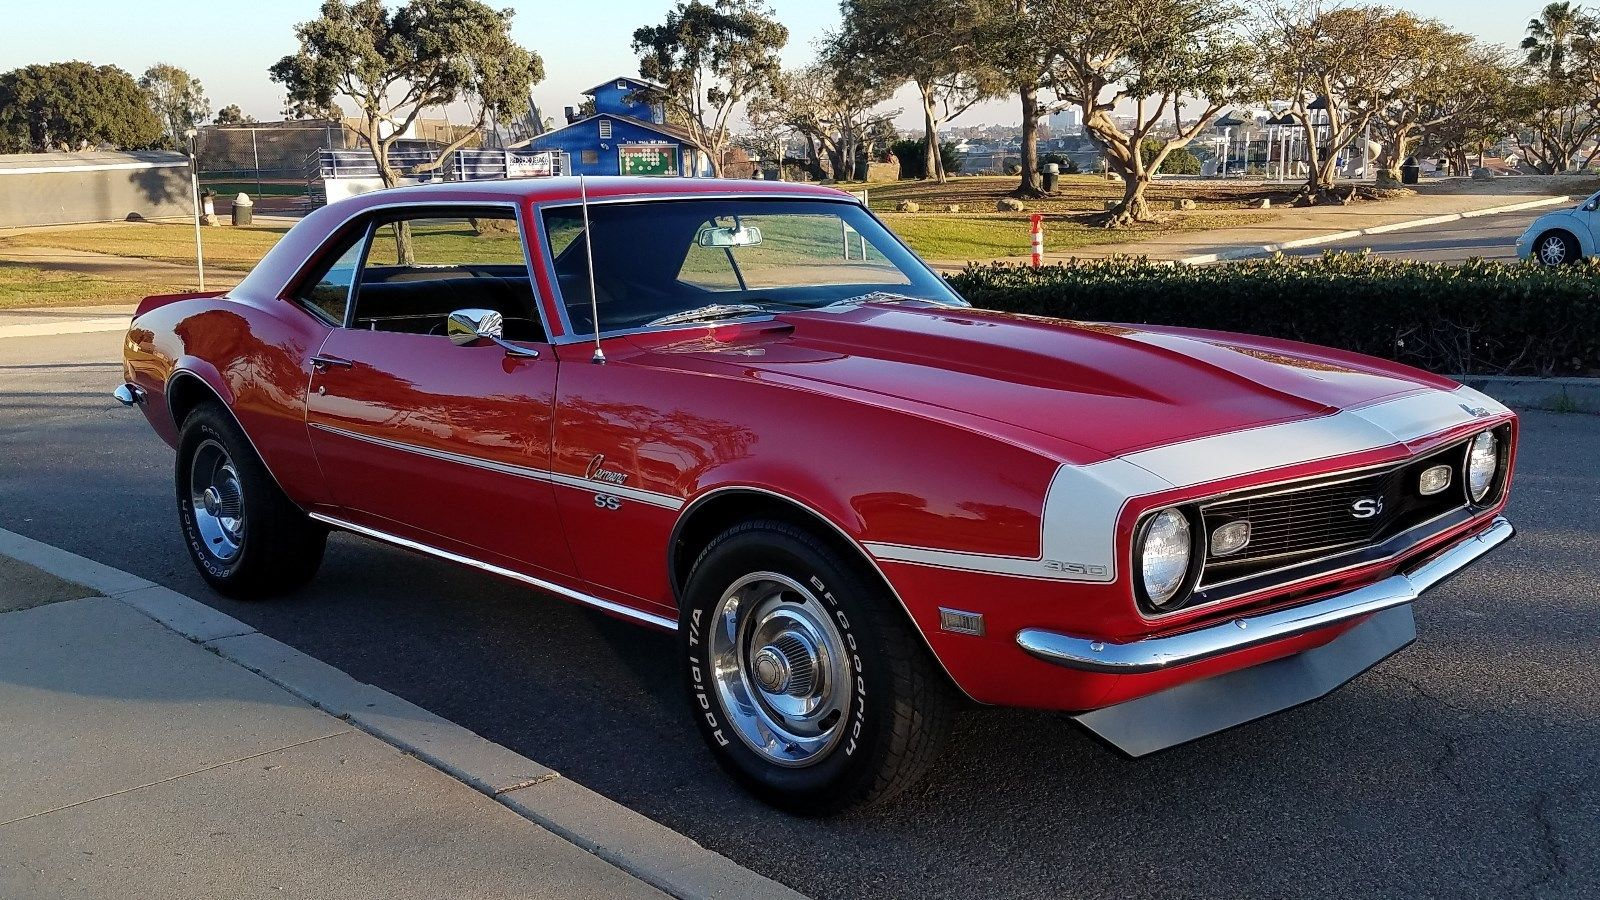 1968 Chevy Camaro Project Cars For Sale ✓ All About Chevrolet